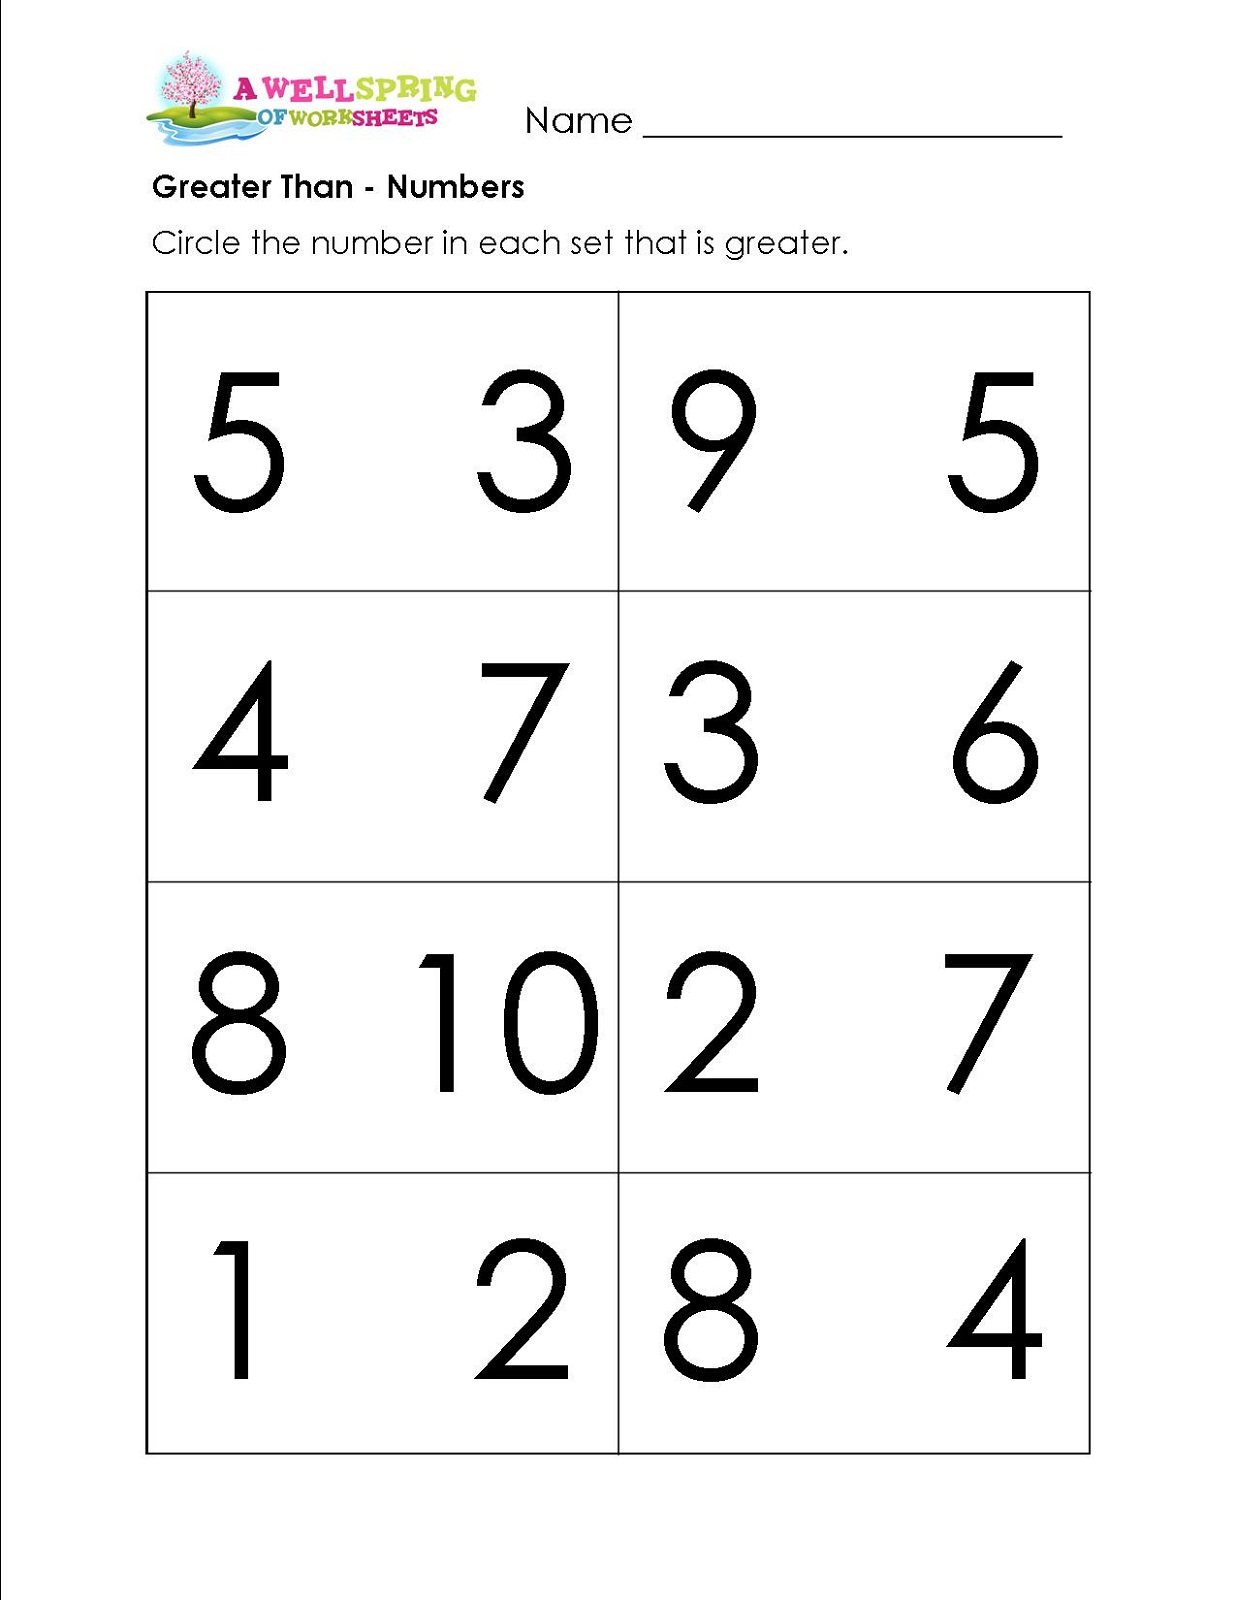 Worksheet More And Less Worksheets For Kindergarten more or less worksheets for kids activity shelter preschool